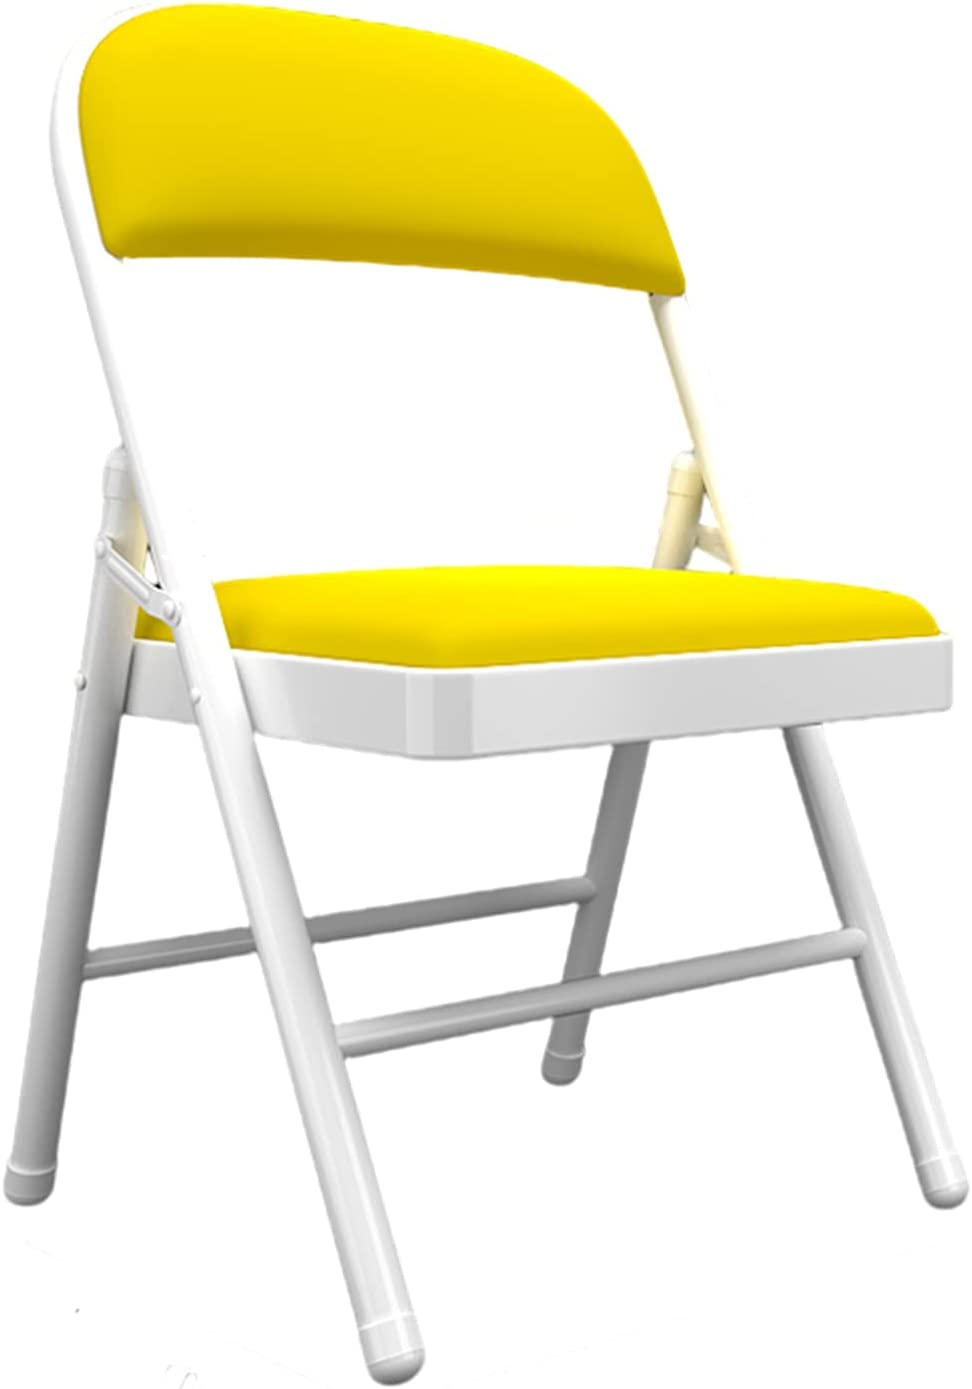 Upholstered Folding Max 69% OFF Chair Metal Easy Popularity